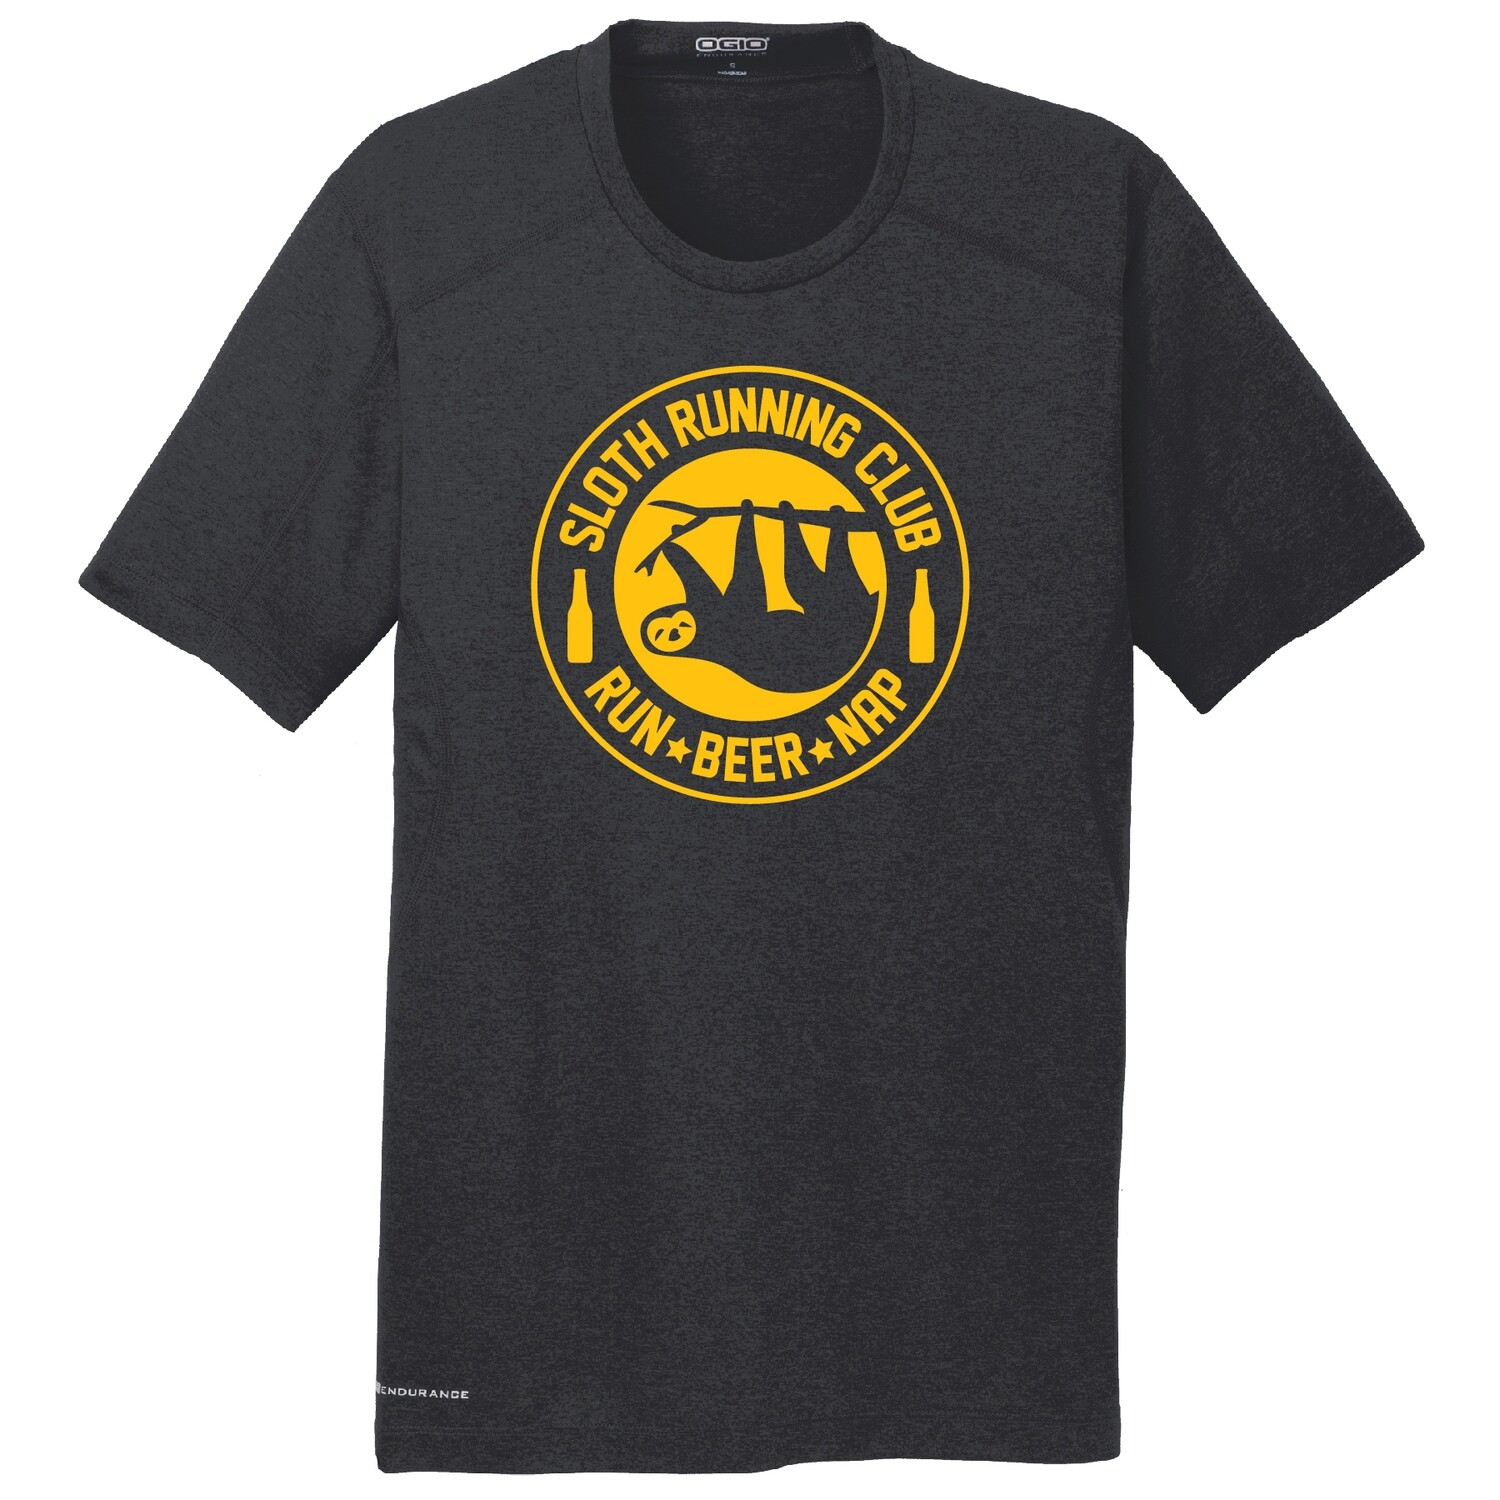 Run Paradise - Mens Sloth Running Club (Beer) Shirt (OE320)